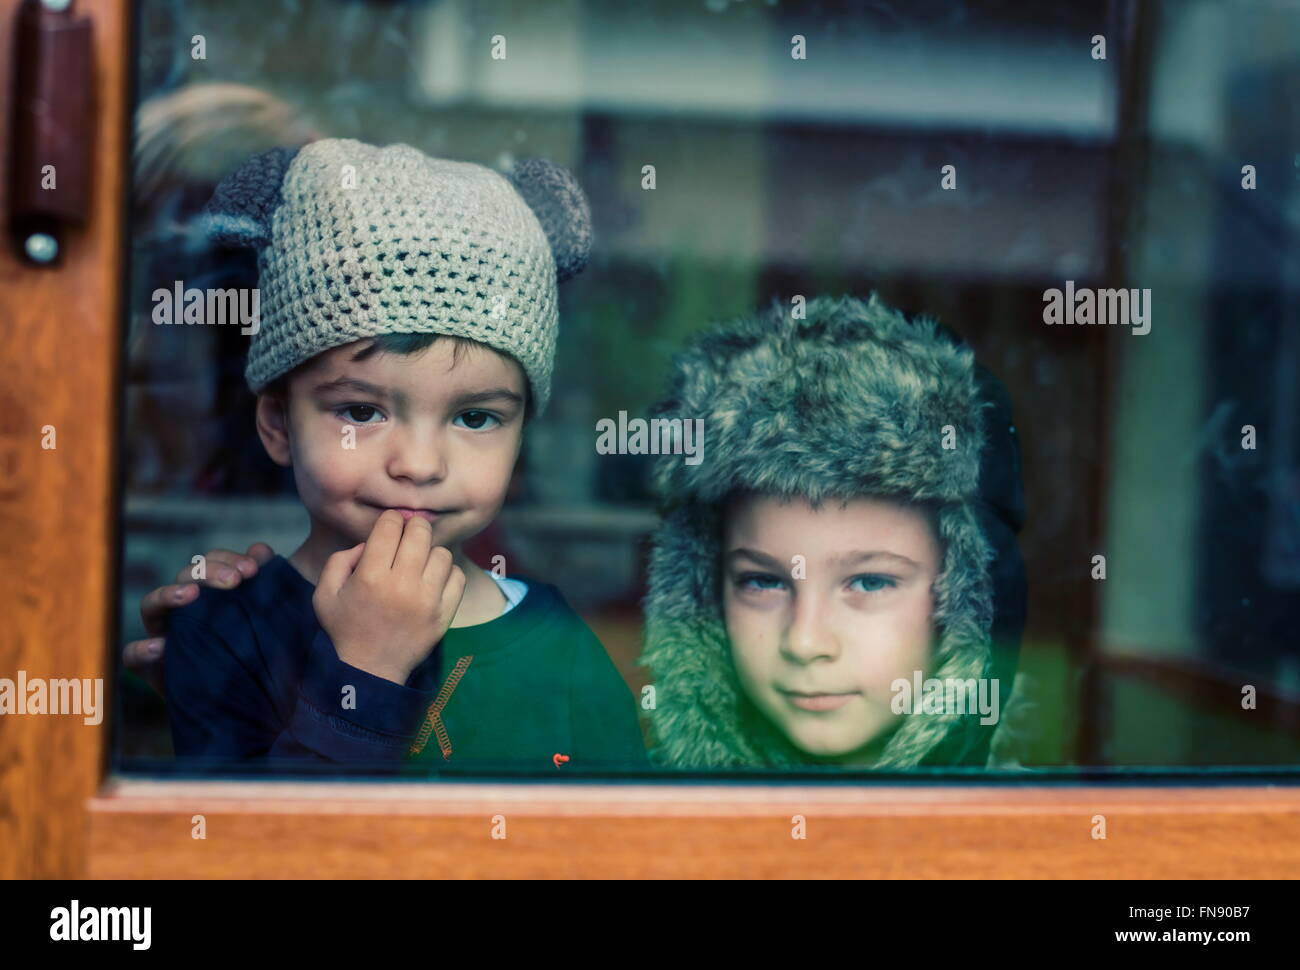 Two boys looking out of a window - Stock Image